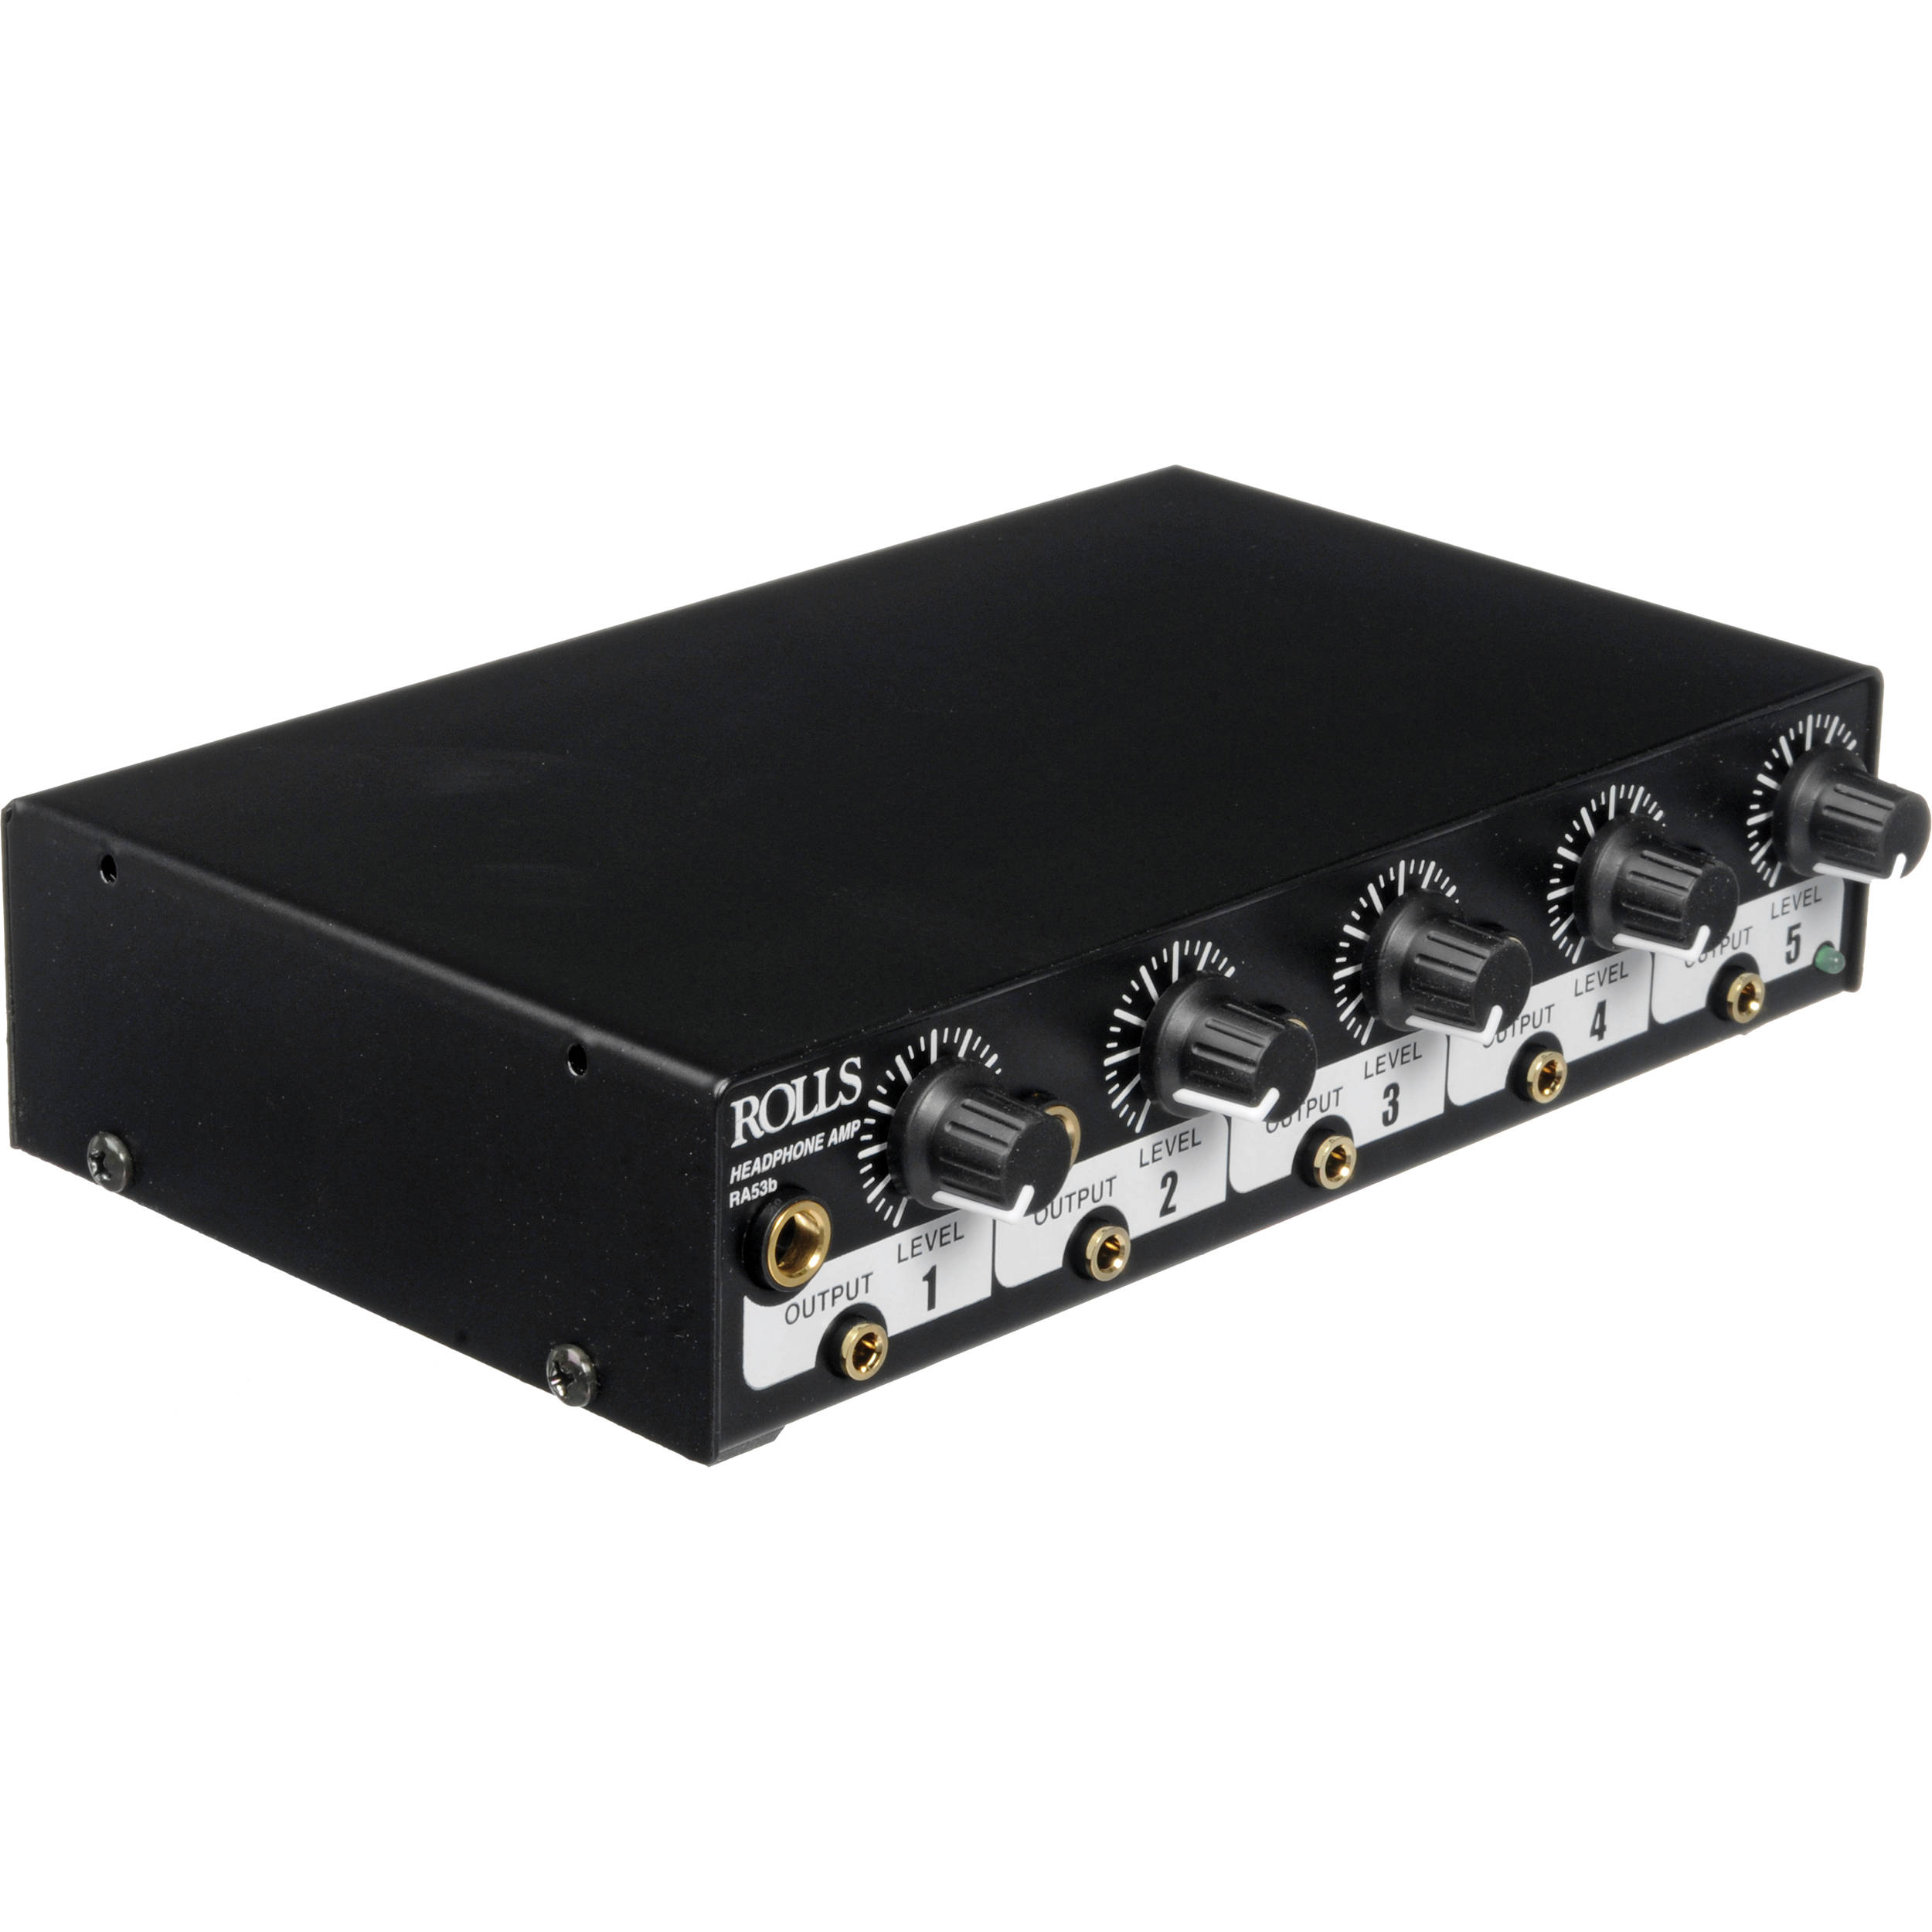 Rolls Ra53b 5 Channel Headphone Amplifier Bh Photo The Jacks On Front Panel Circuit